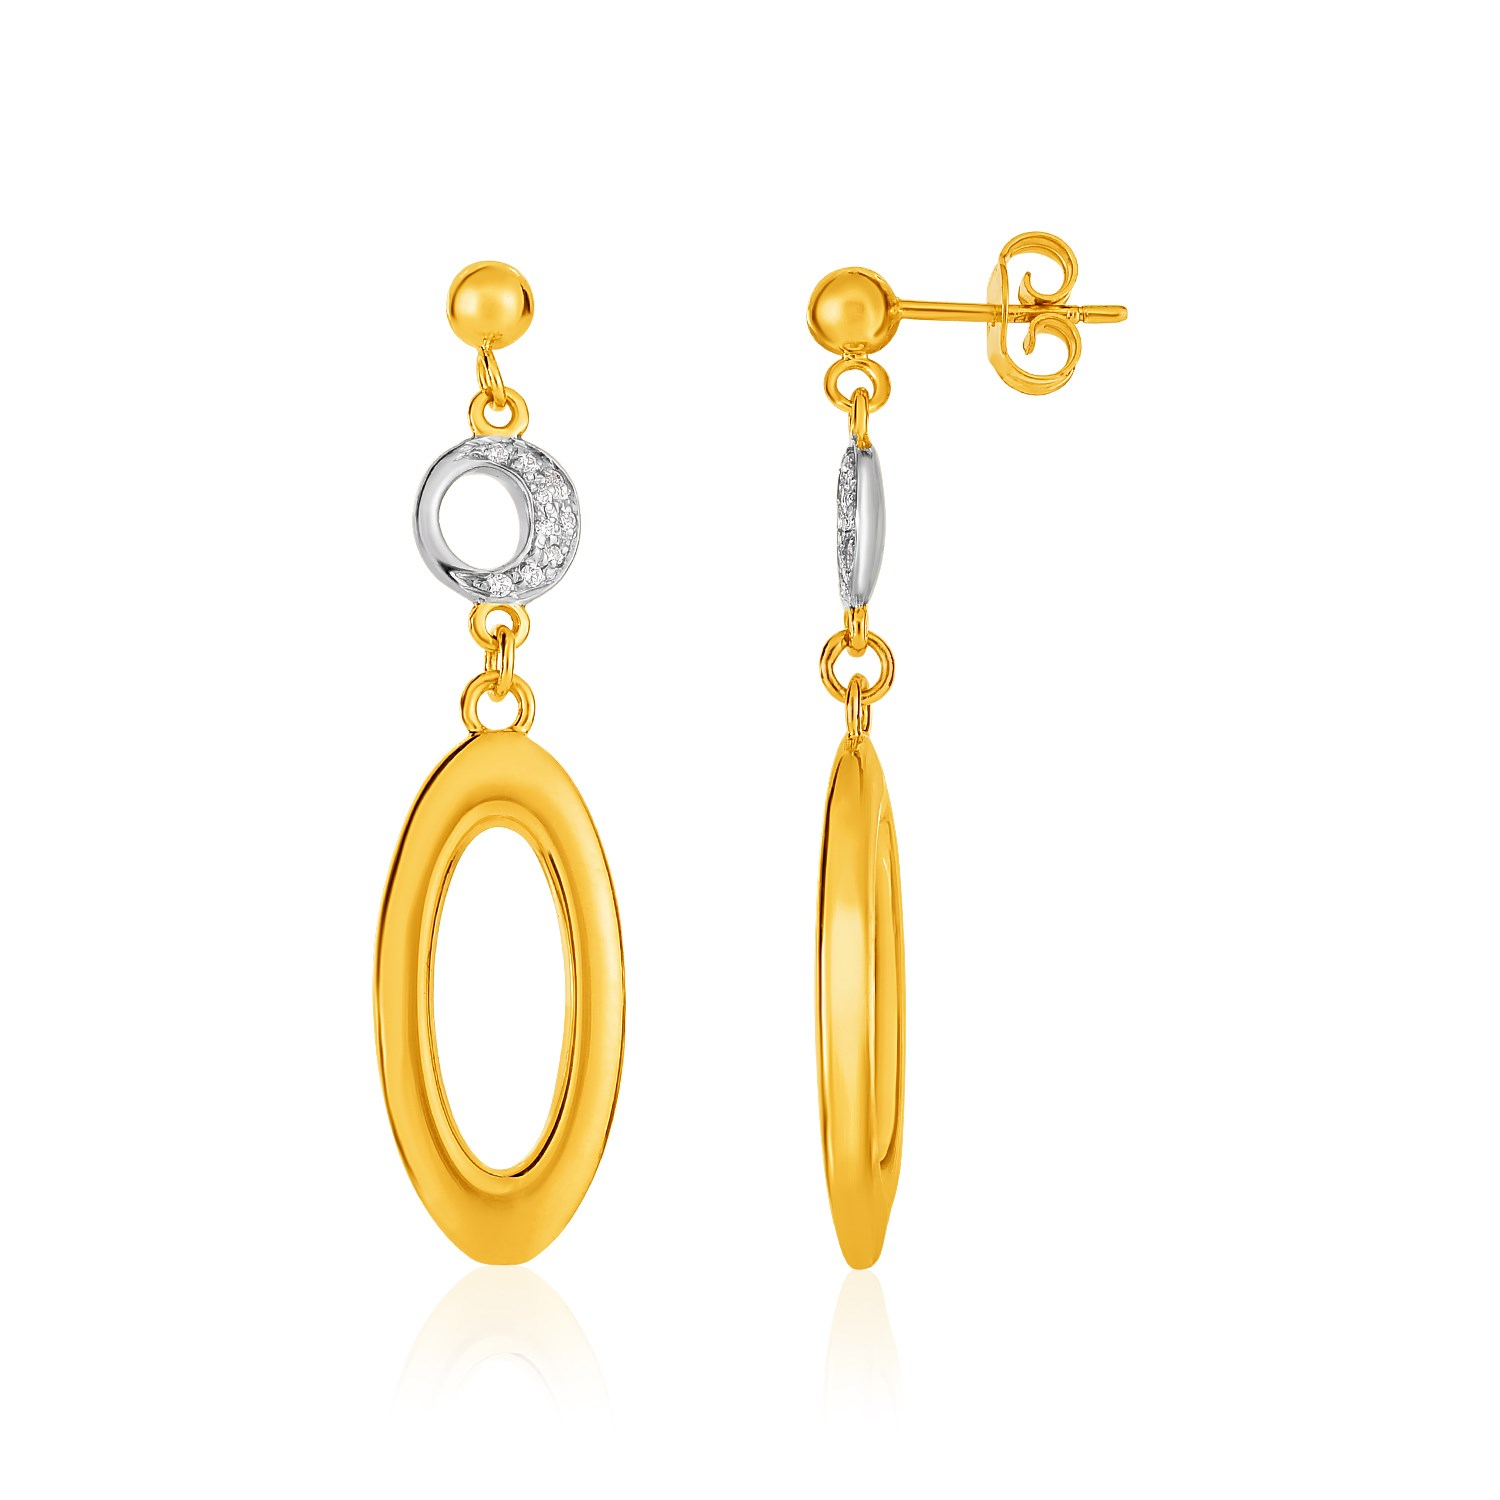 14K Yellow Gold and Diamond Oval and Crescent Moon Earrings (1/1